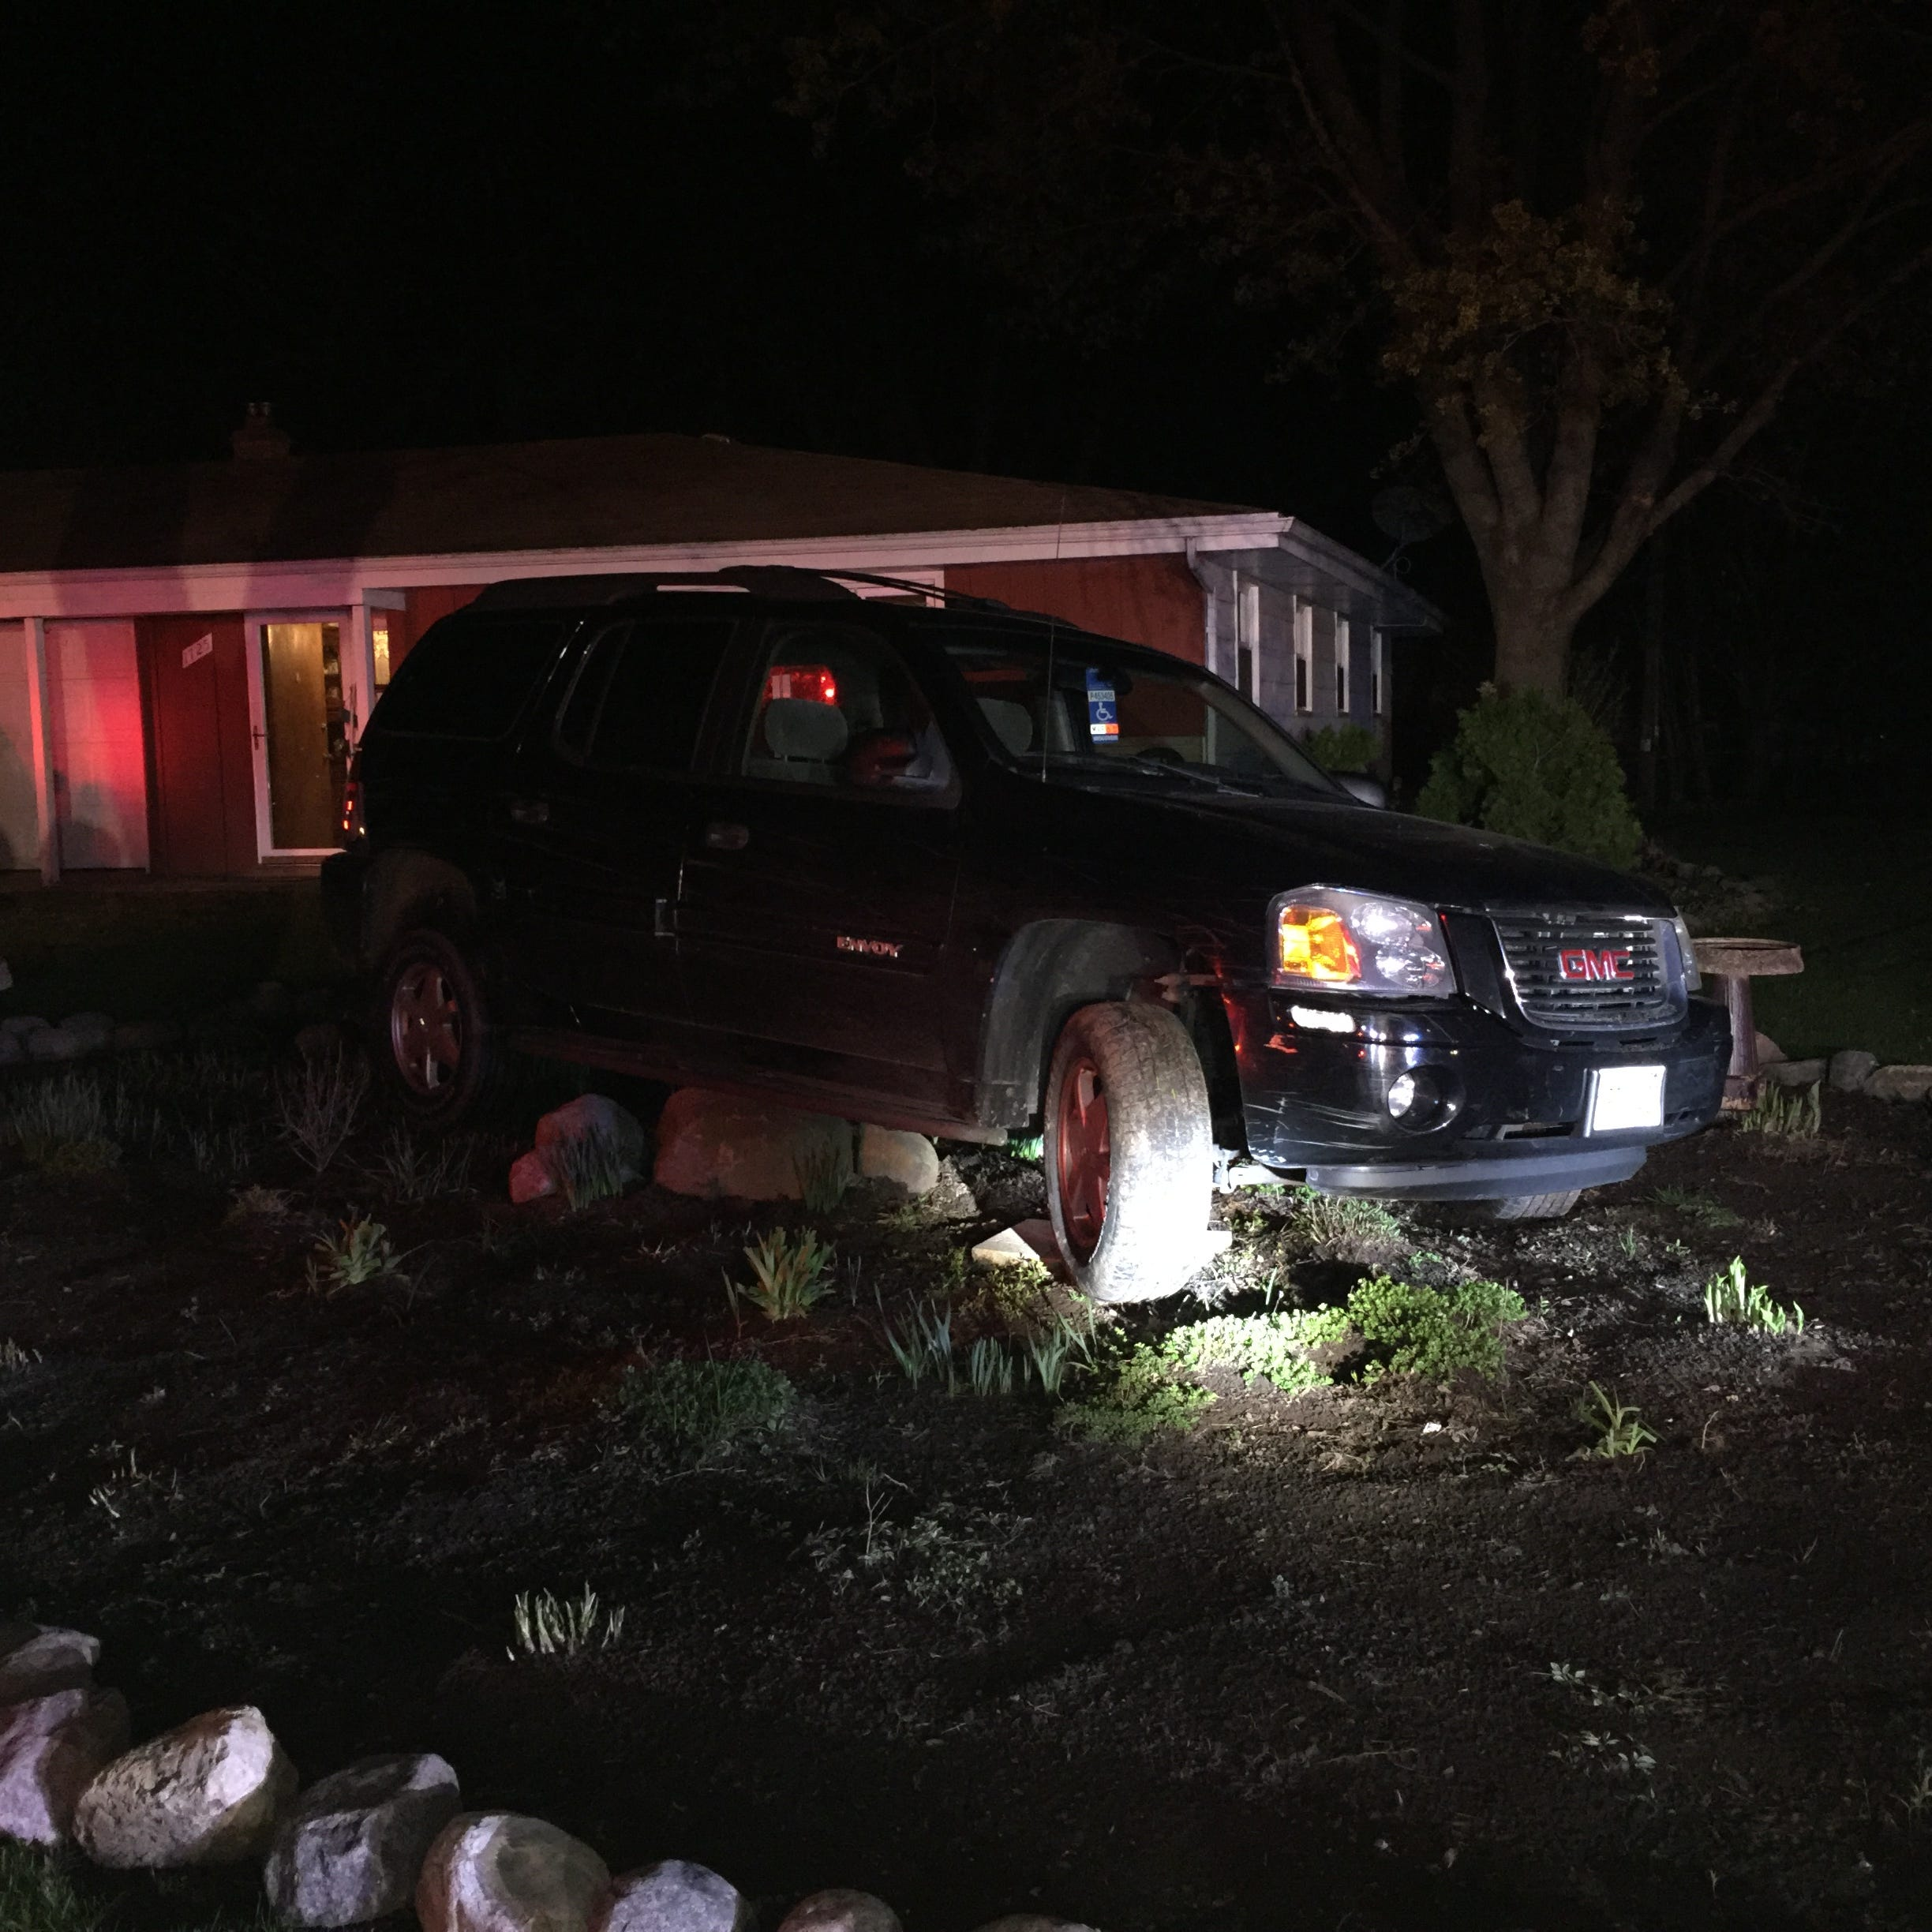 With 3 kids in car, she drove drunk, piled vehicle up onto landscaping rock, police say